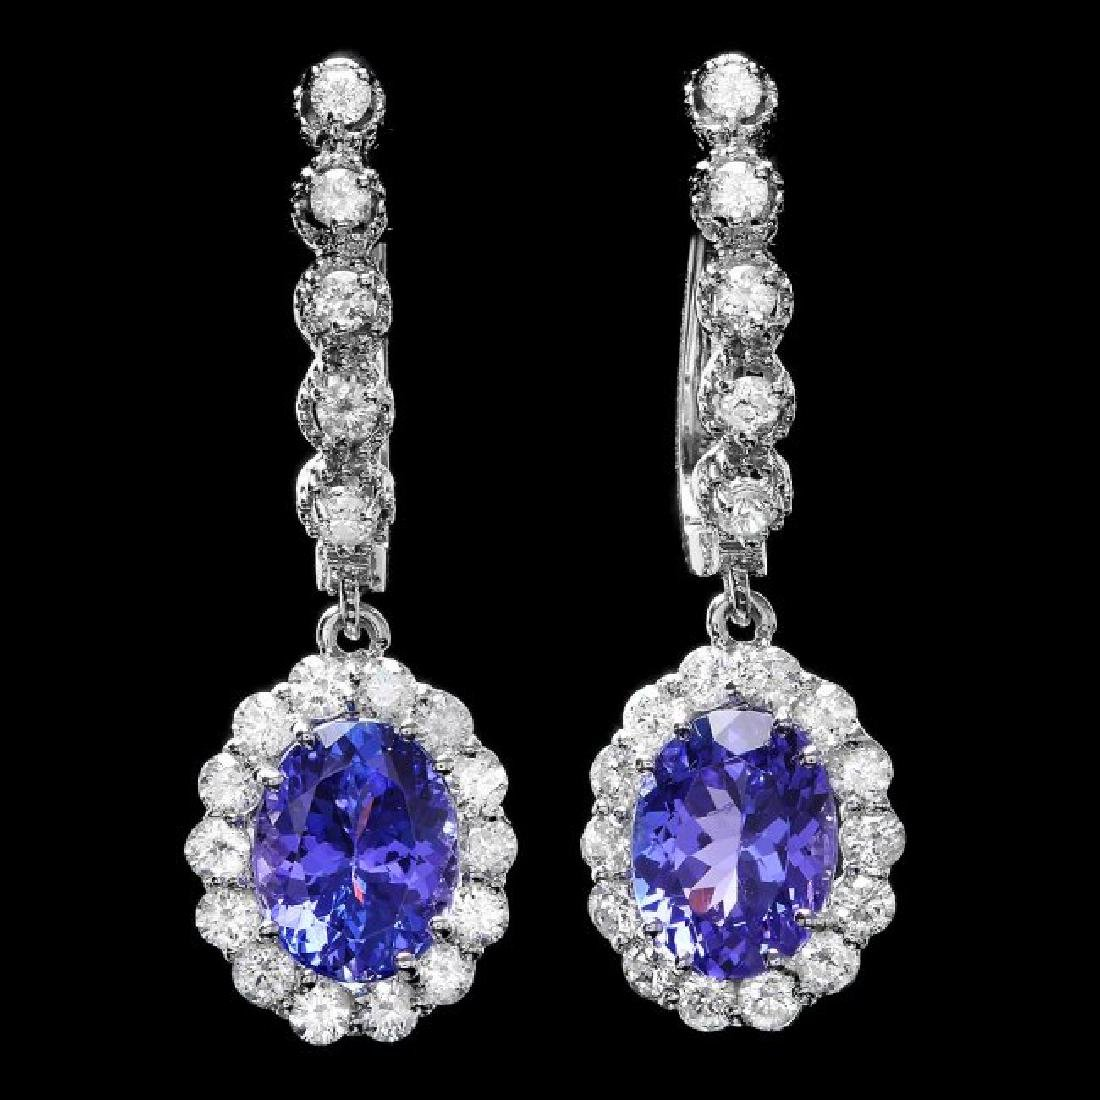 14k Gold 4ct Tanzanite 1.35ct Diamond Earrings